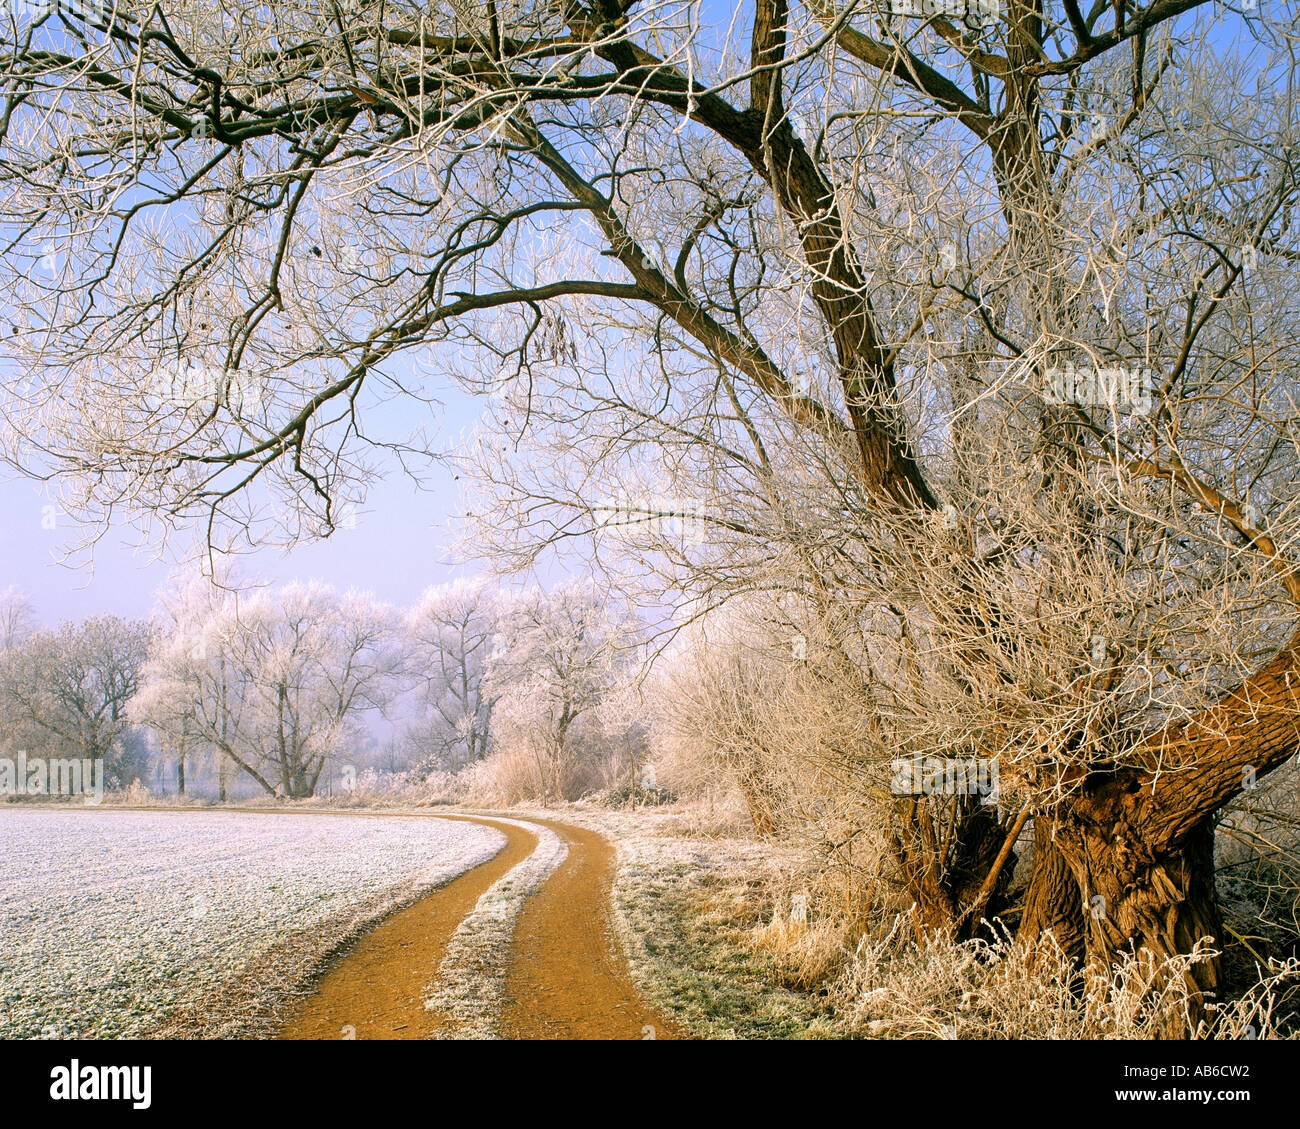 GB - GLOUCESTERSHIRE:  Winter Scene in the Cotswolds - Stock Image